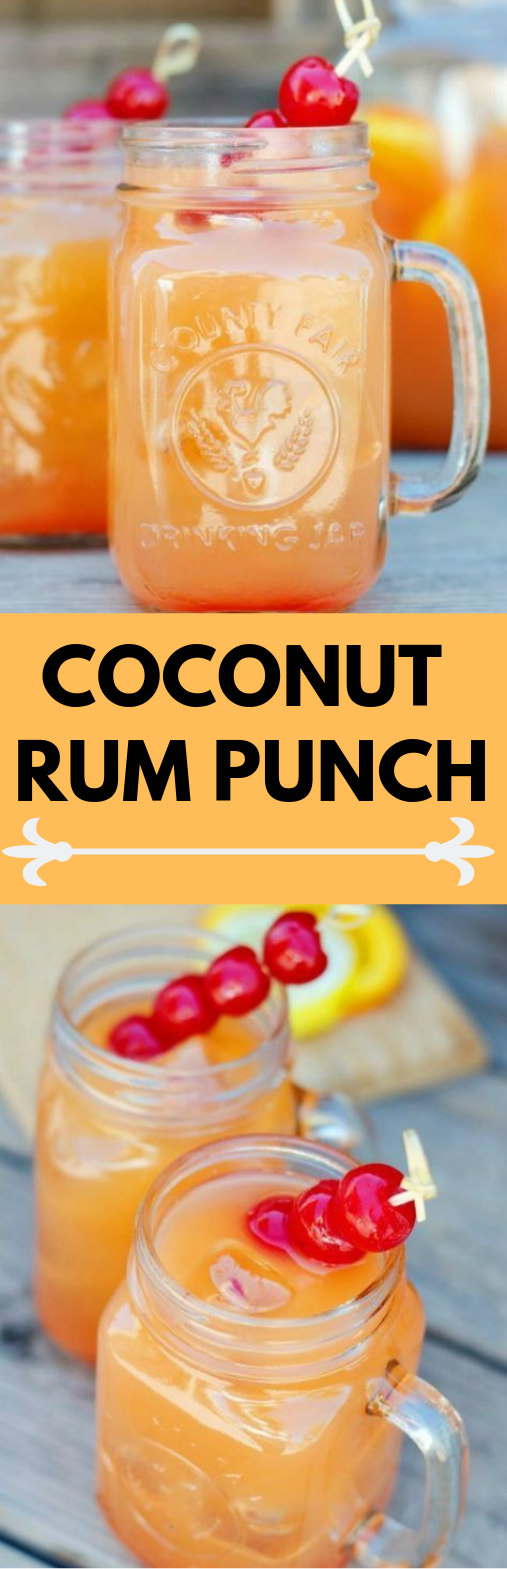 Coconut Rum Punch #drink #yummy